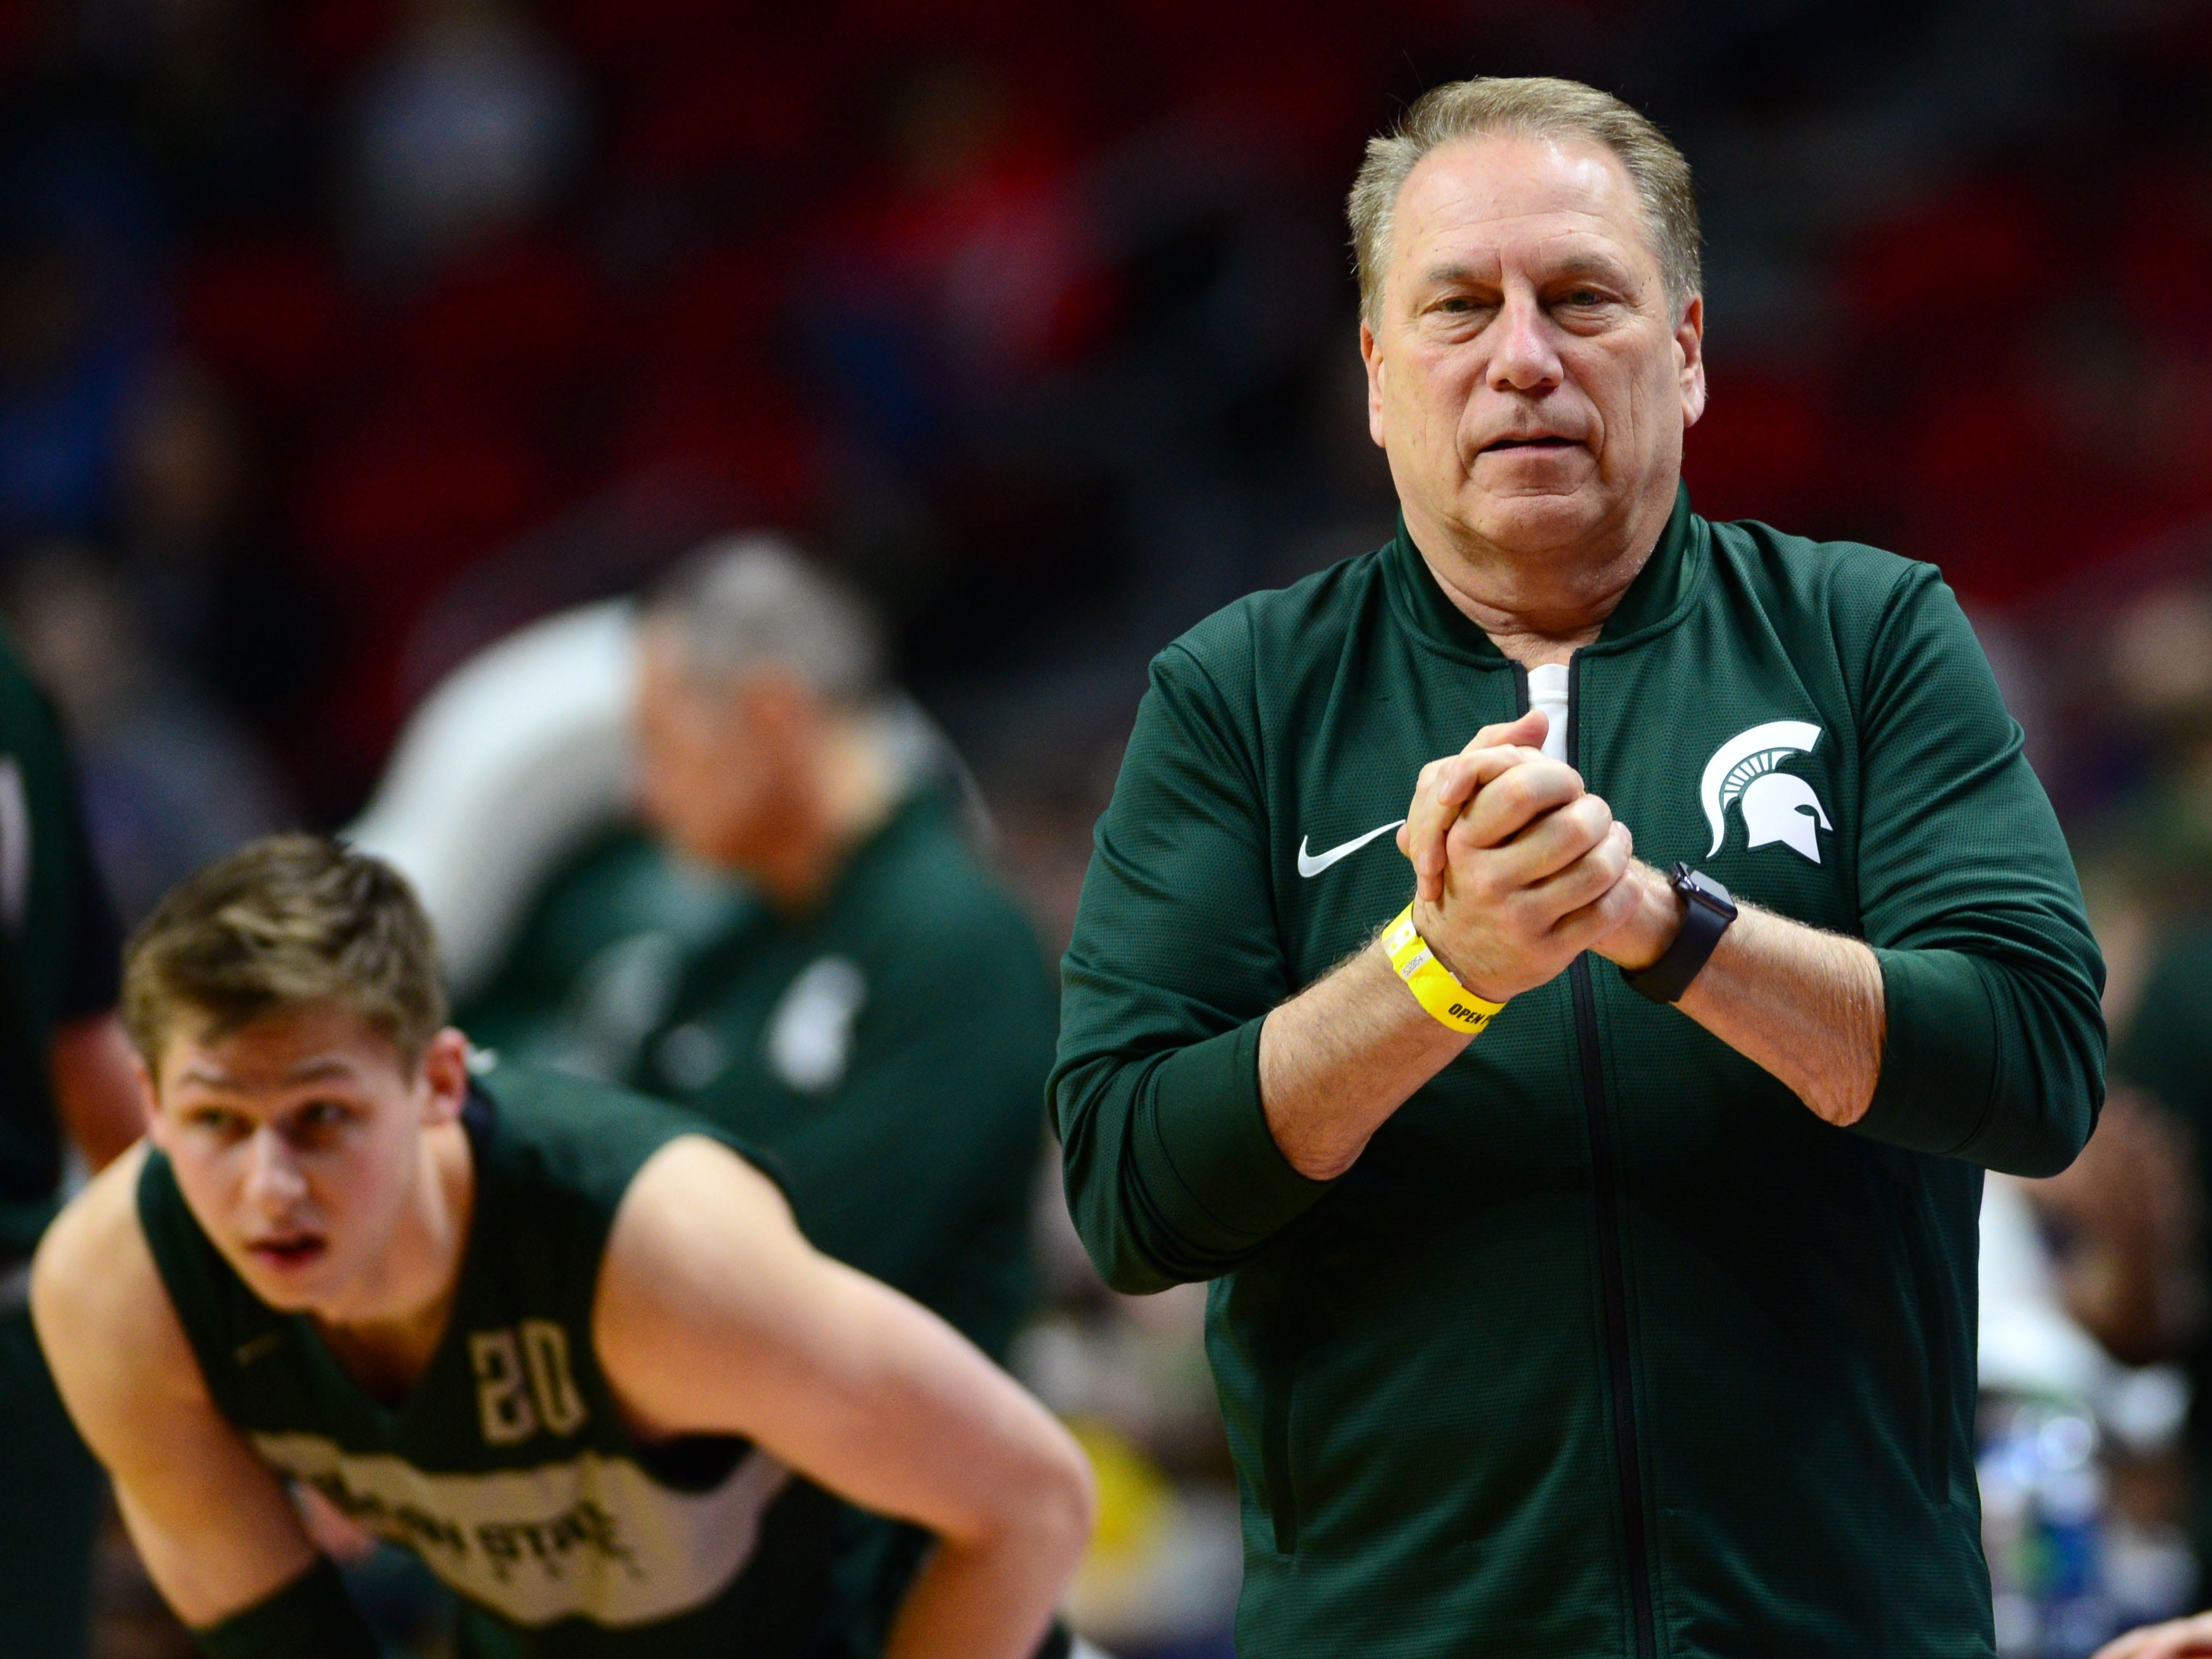 Mar 20, 2019; Des Moines, IA, USA; Michigan State Spartans head coach Tom Izzo during practice before the first round of the 2019 NCAA Tournament at Wells Fargo Arena. Mandatory Credit: Jeffery Becker-USA TODAY Sports